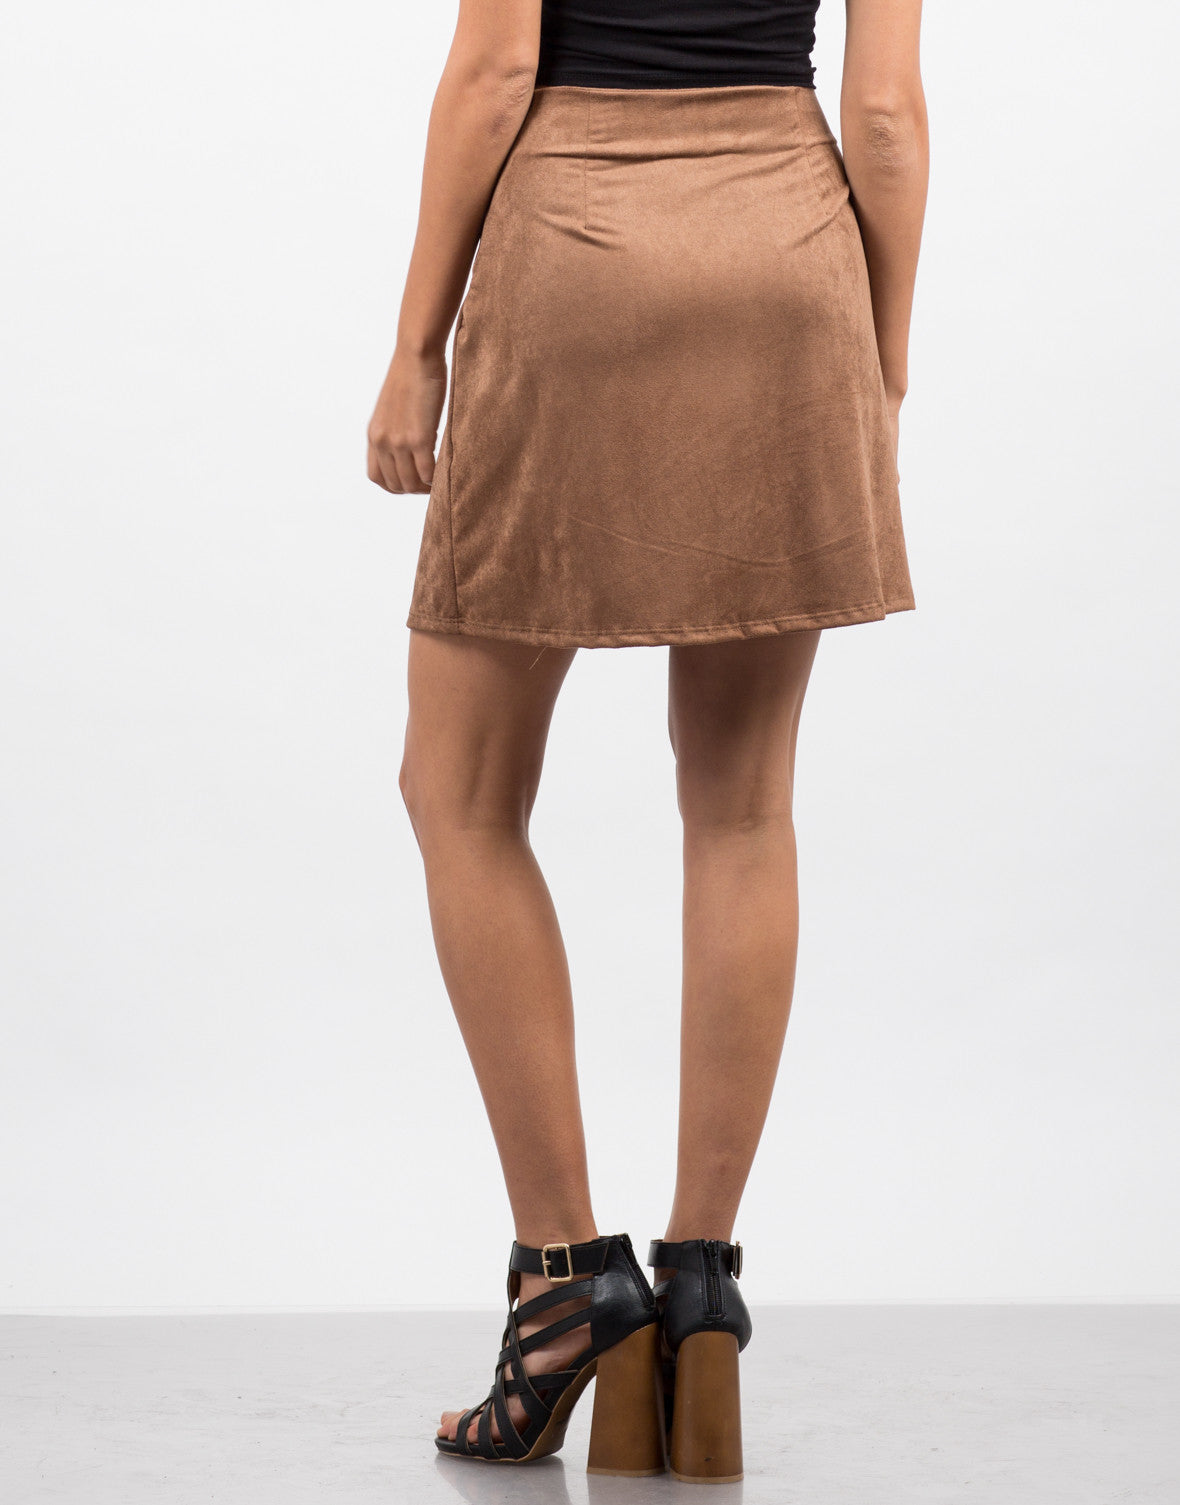 Back View of Microsuede Lace Up Skirt